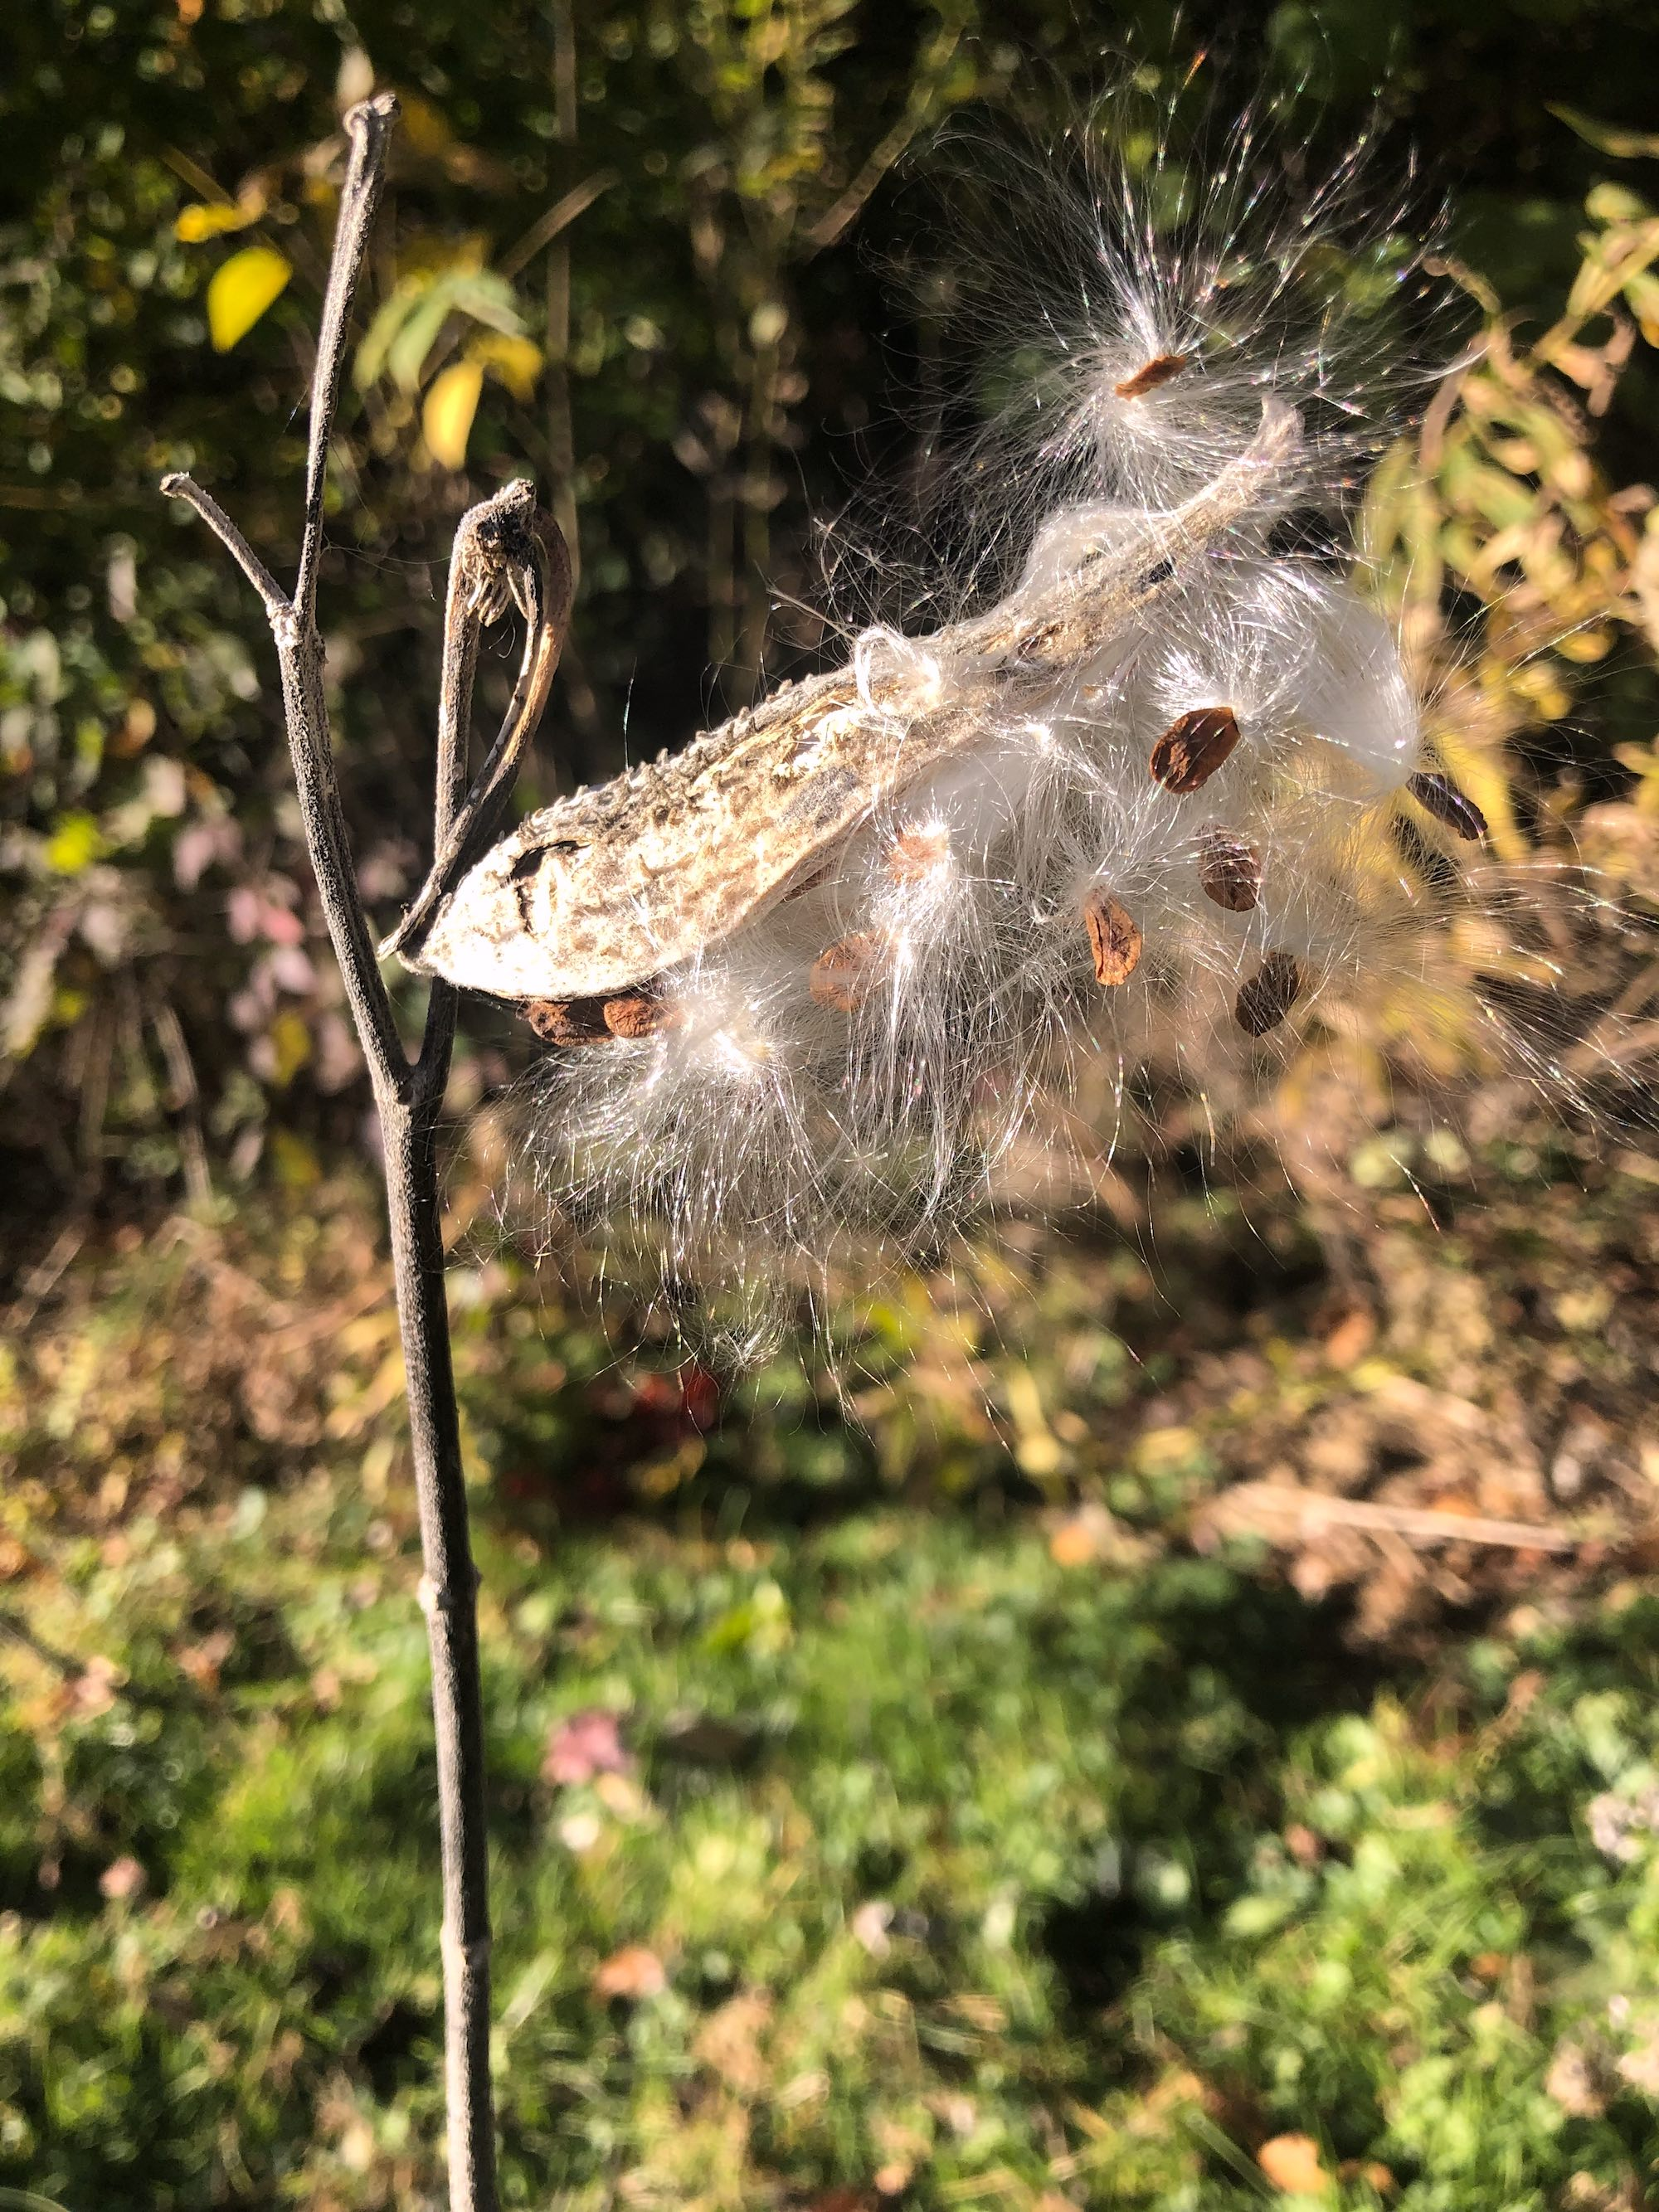 Common Milkweed in UW Arboretum on October 13, 2020.